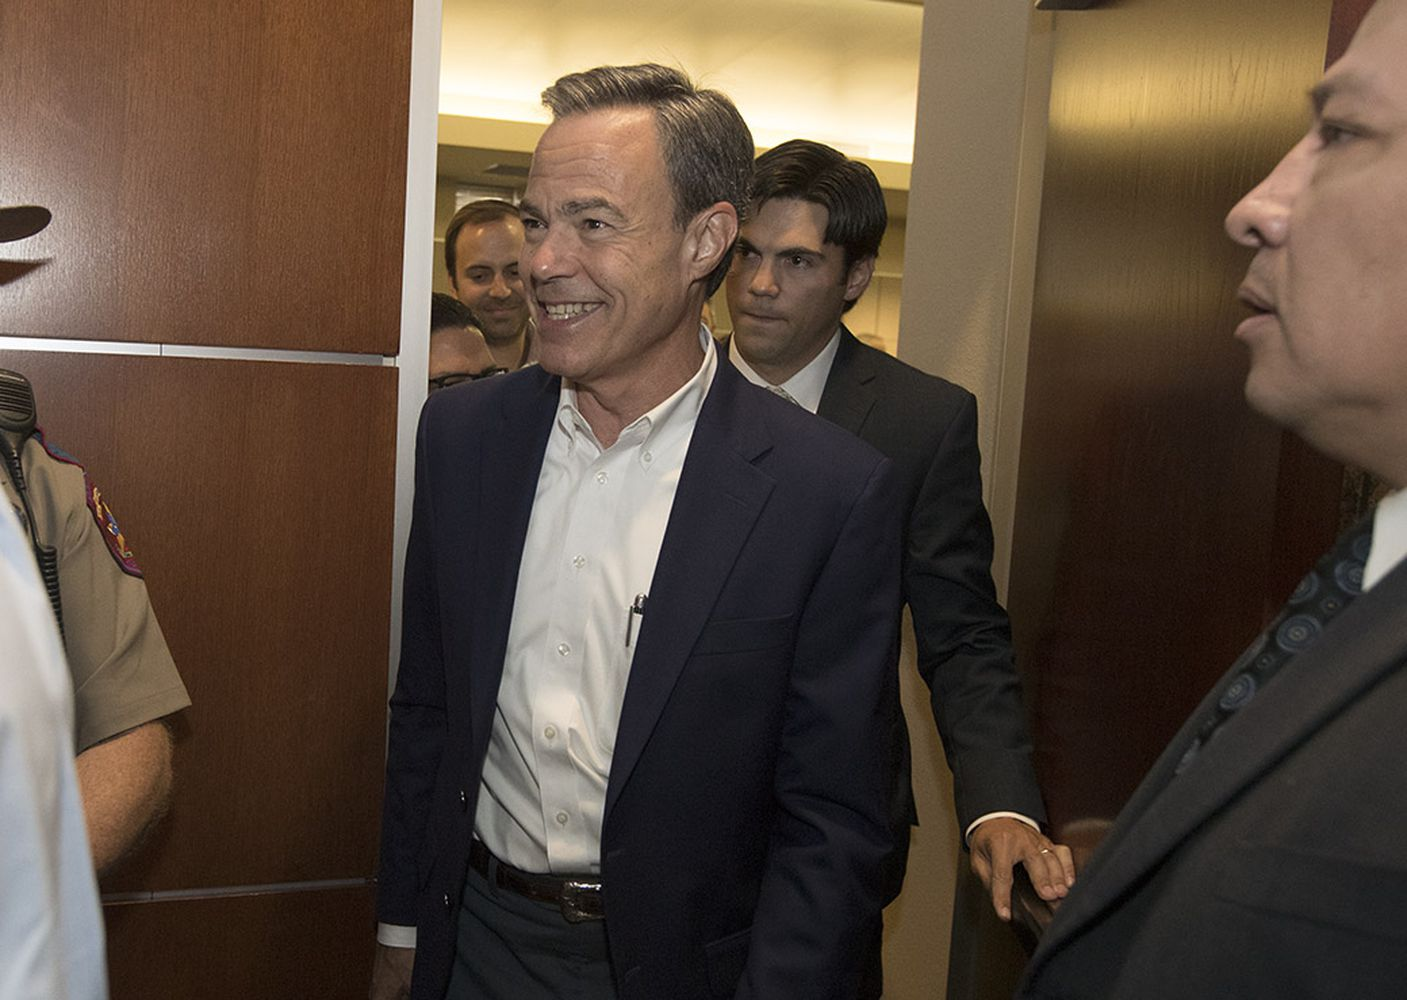 House Speaker Joe Straus, R-San Antonio, emerges smiling from a caucus of Republican members after the 85th Legislature adjourned sine die on Aug. 16, 2017.